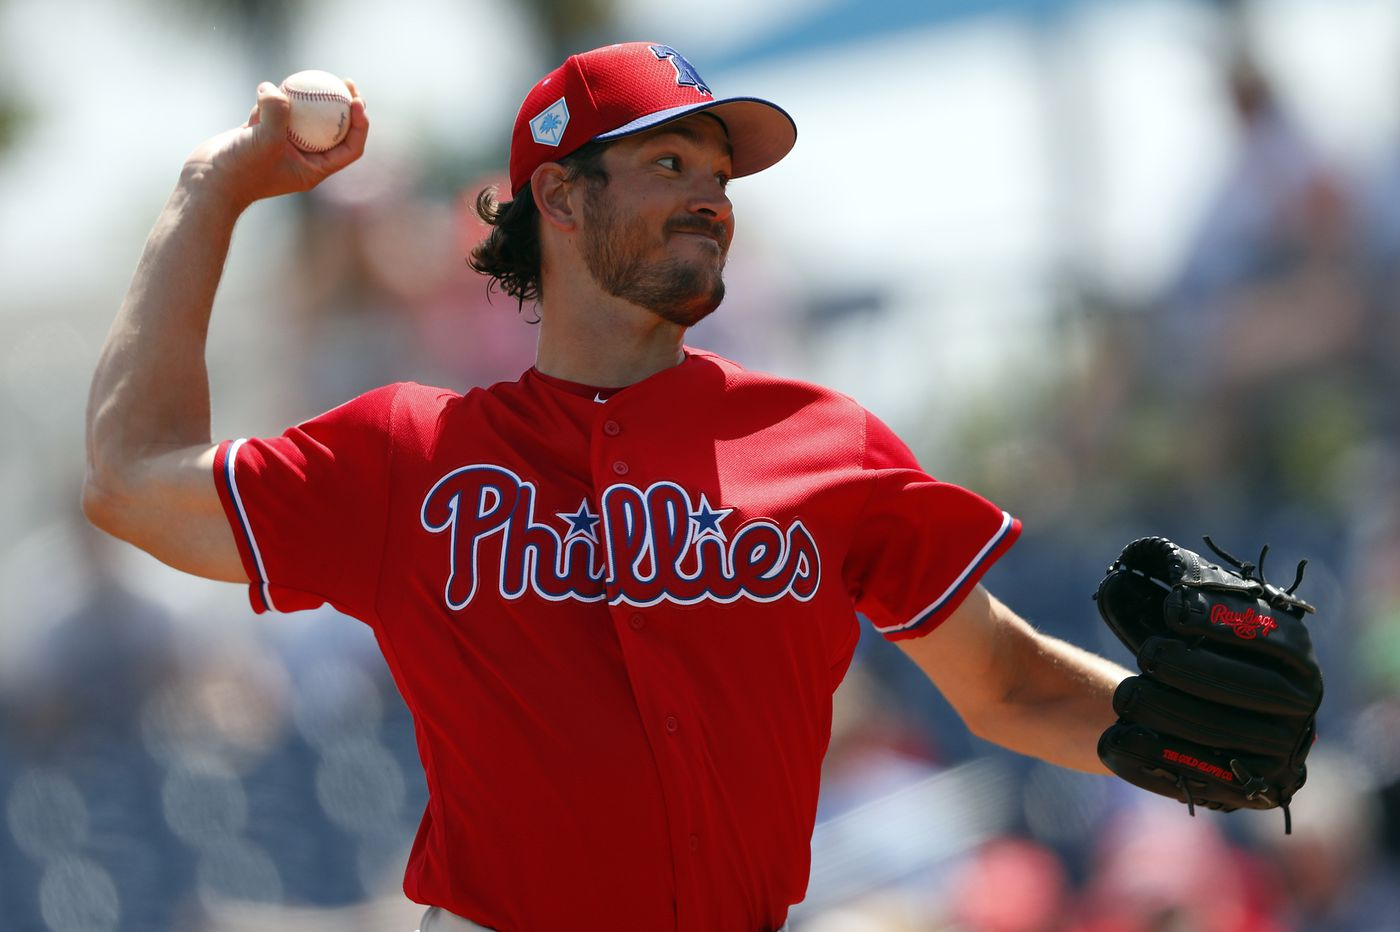 Phillies trim roster for final days of spring training